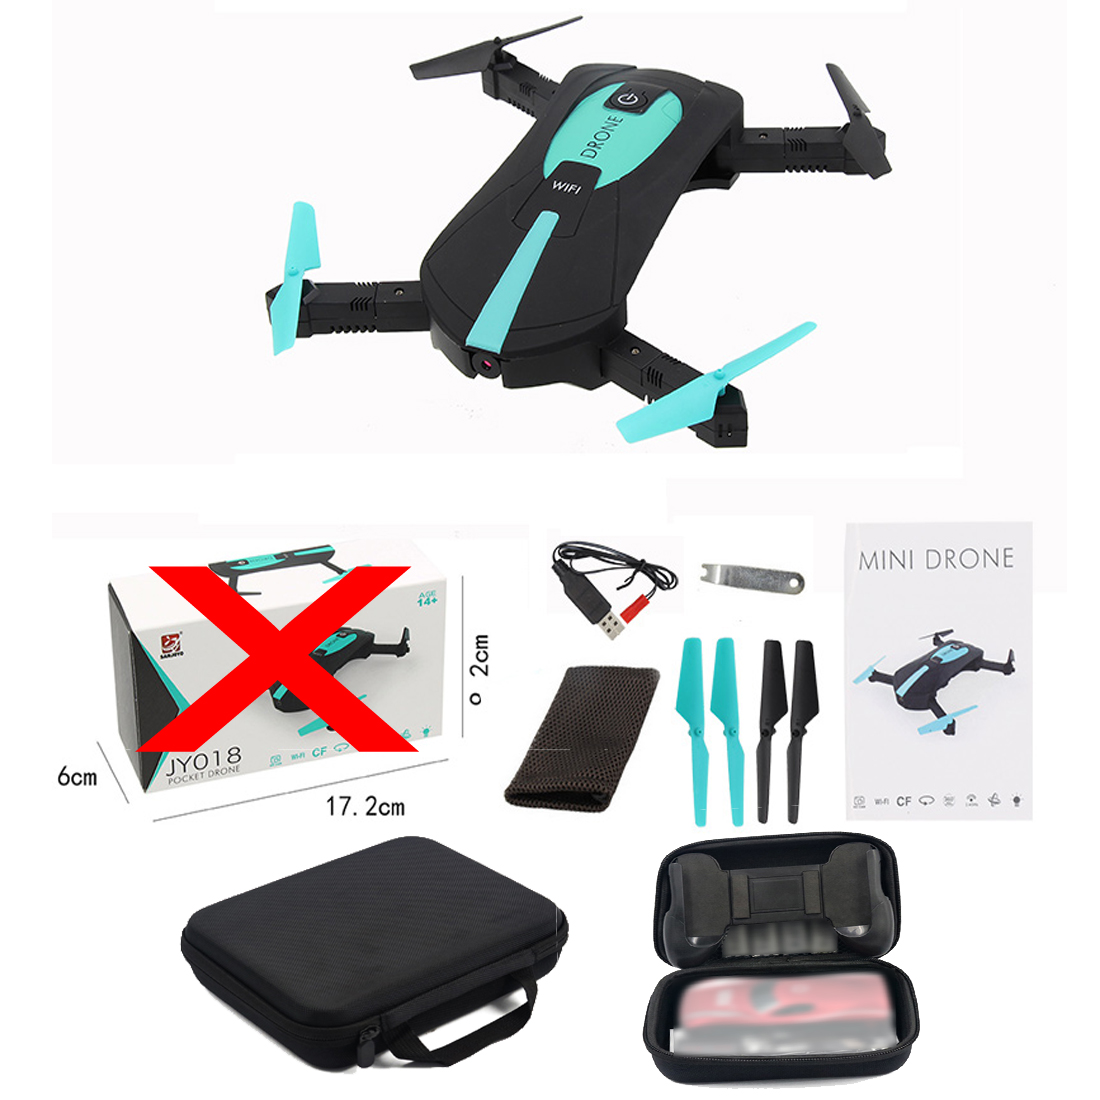 JY018 ELFIE WiFi FPV Quadcopter Mini Foldable Selfie Drone RC Drone with 0.3MP / 2MP Camera HD FPV VS H37 720P RC Helicopters rc drone 720p hd camera for x12 wifi fpv drone with camera rc quadcopter parts